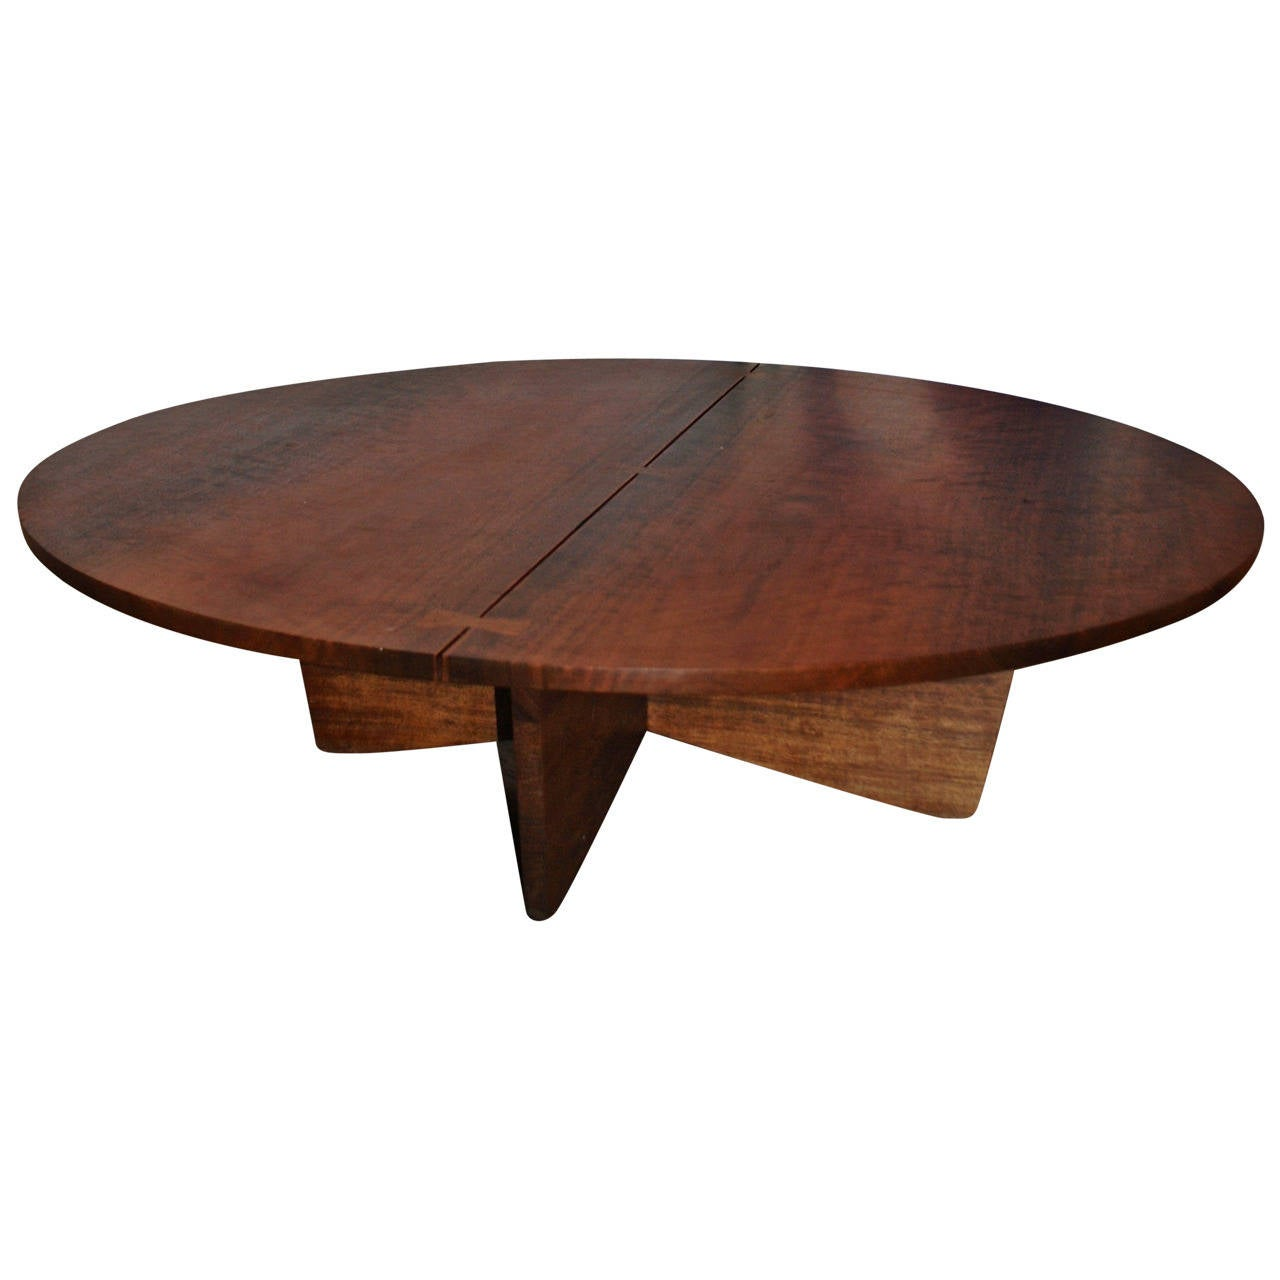 George Nakashima Coffee Table In Indian Laurel, 1969